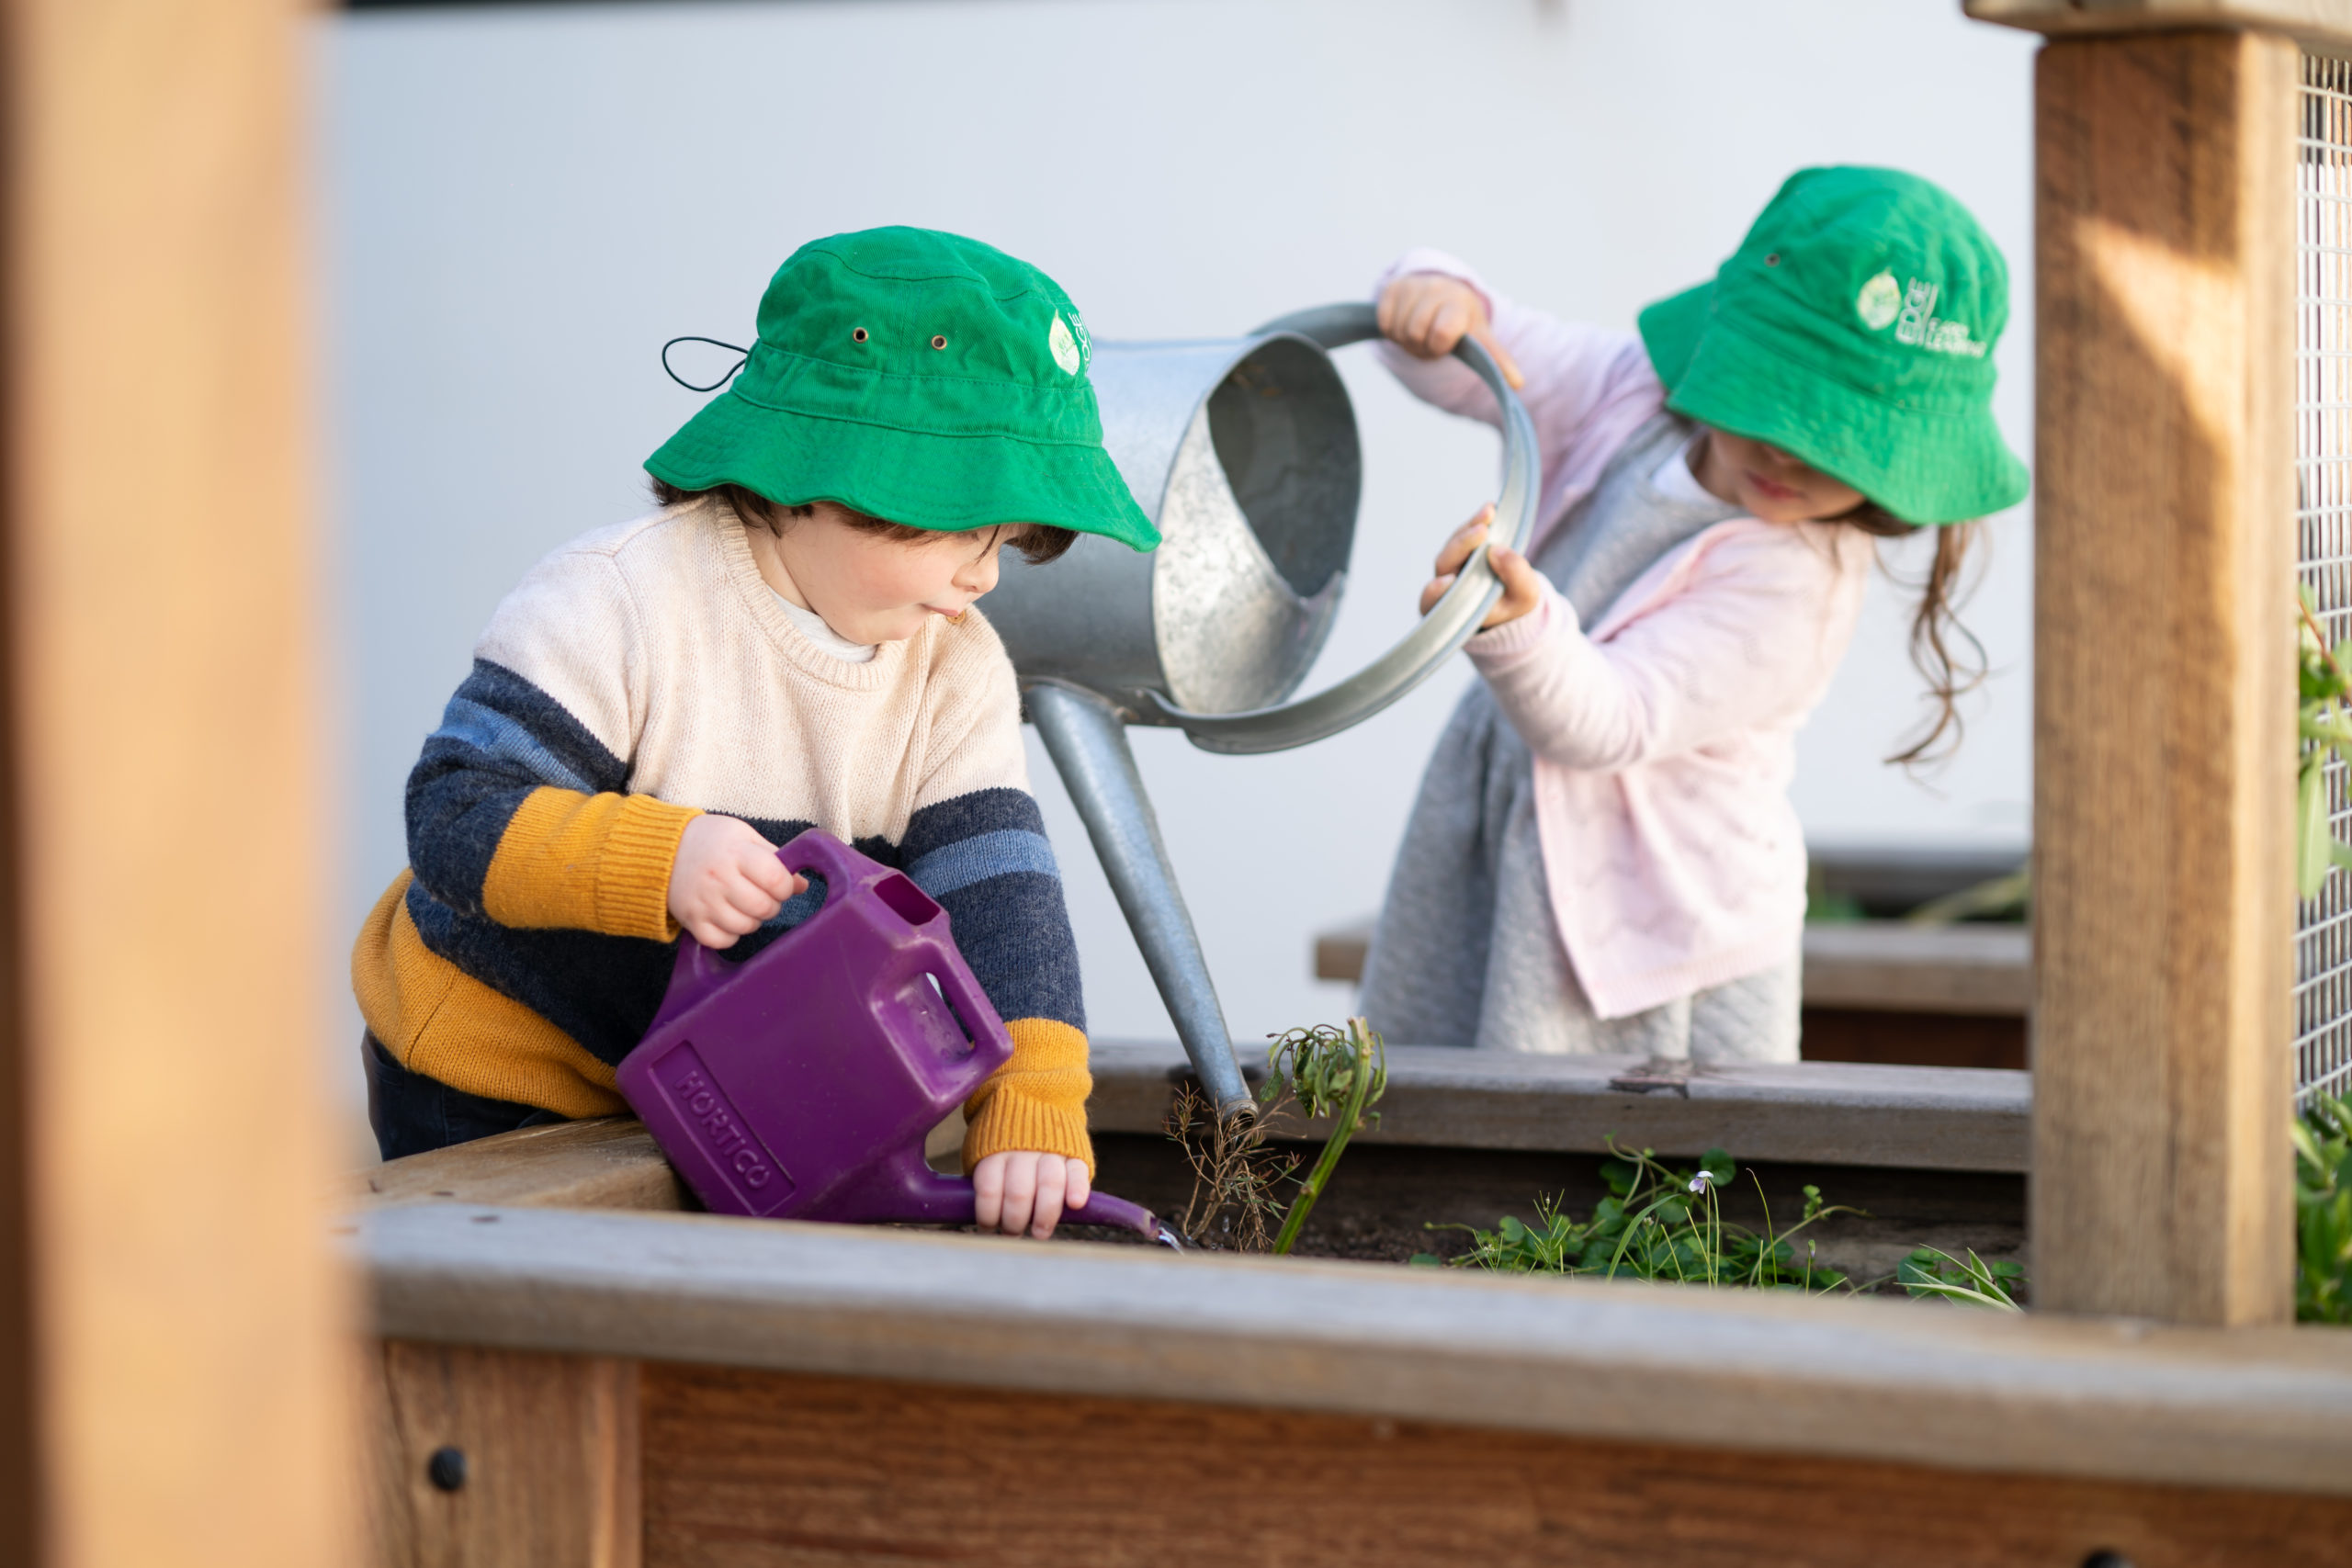 teaching responsibility with plants